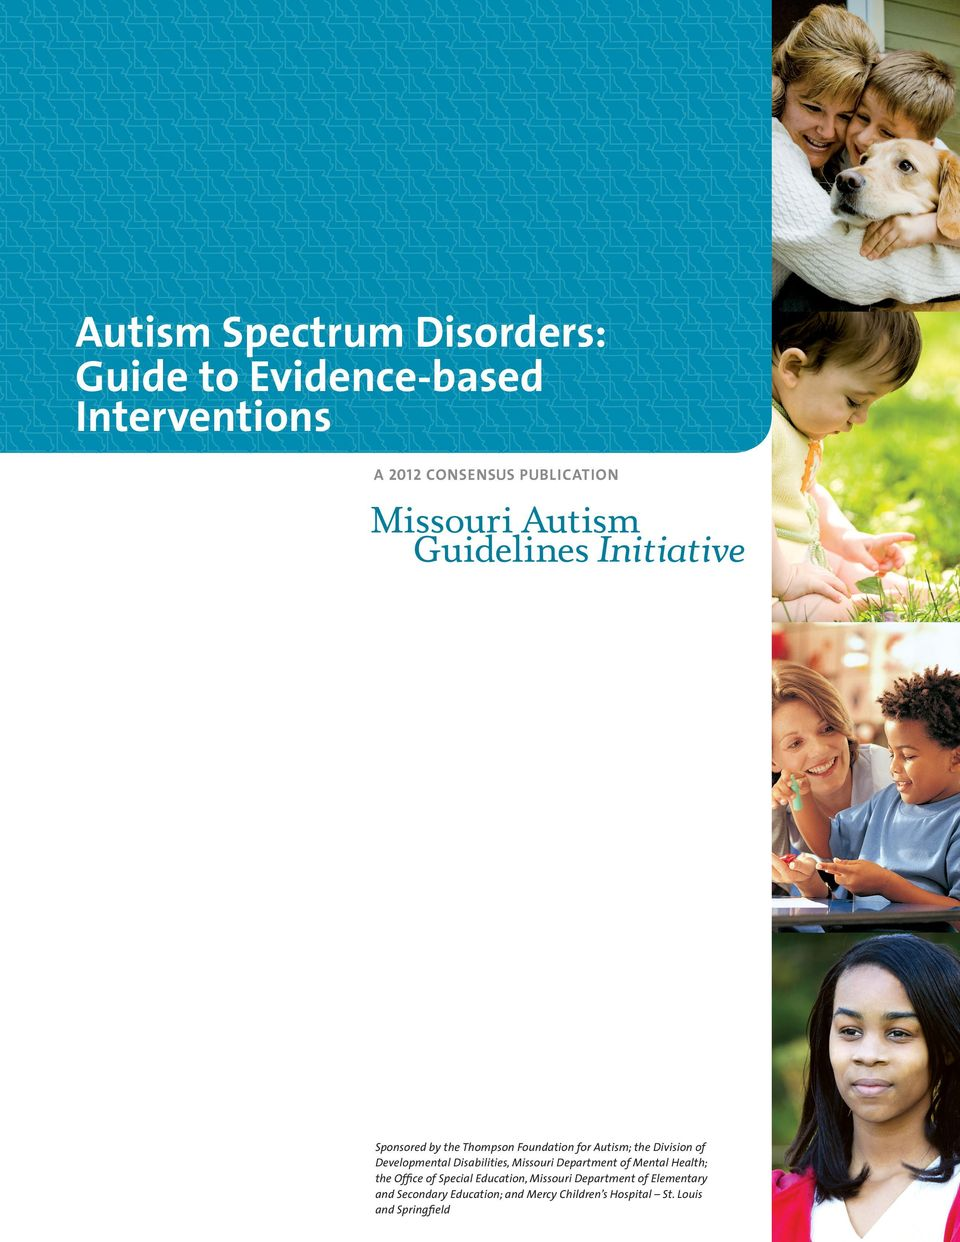 Disabilities, Missouri Department of Mental Health; the Office of Special Education,